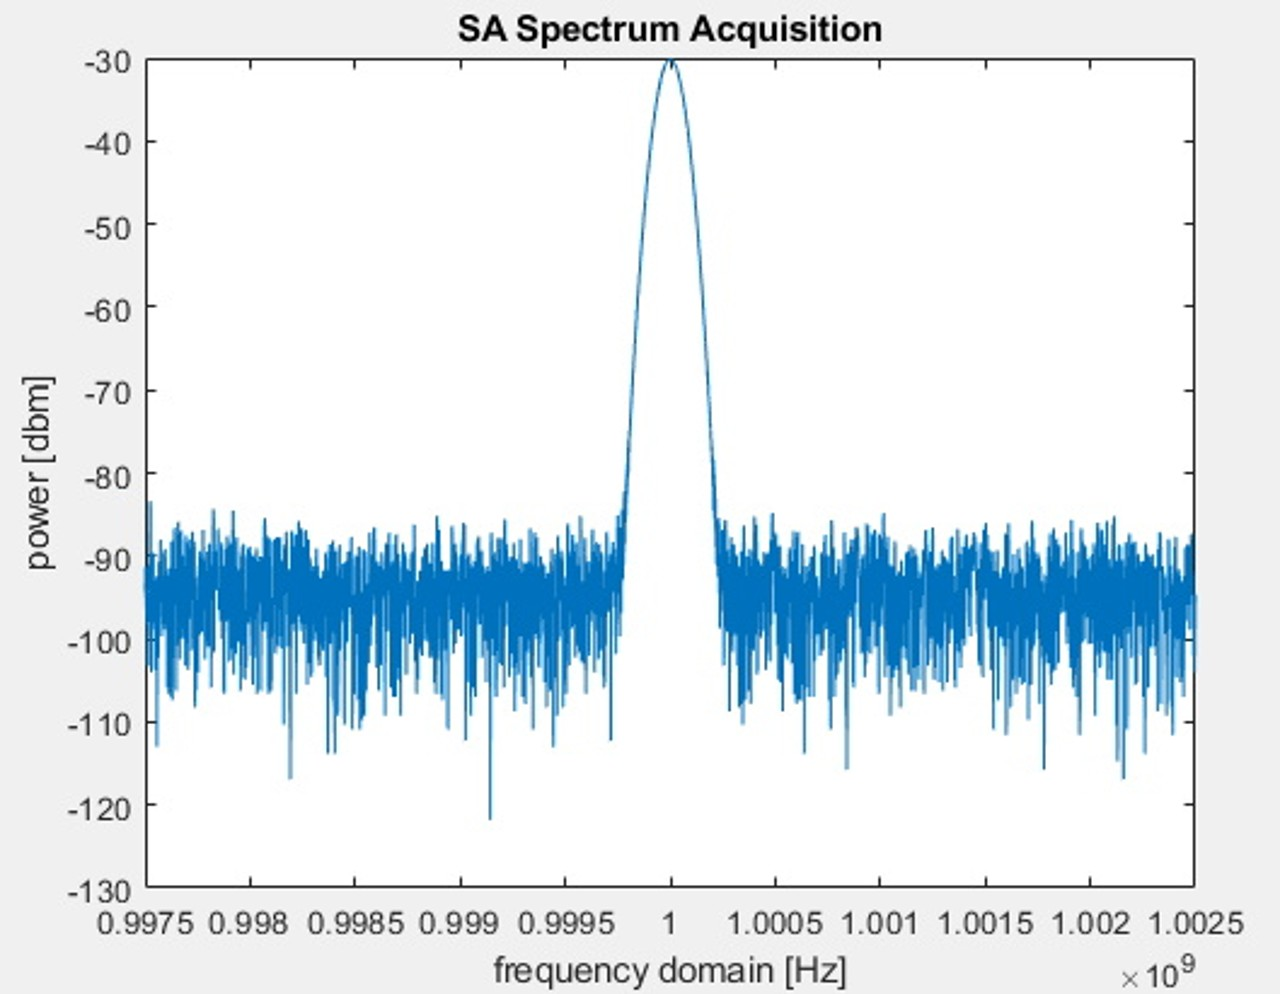 Capturing a trace in Spectrum Analyzer mode using Matlab